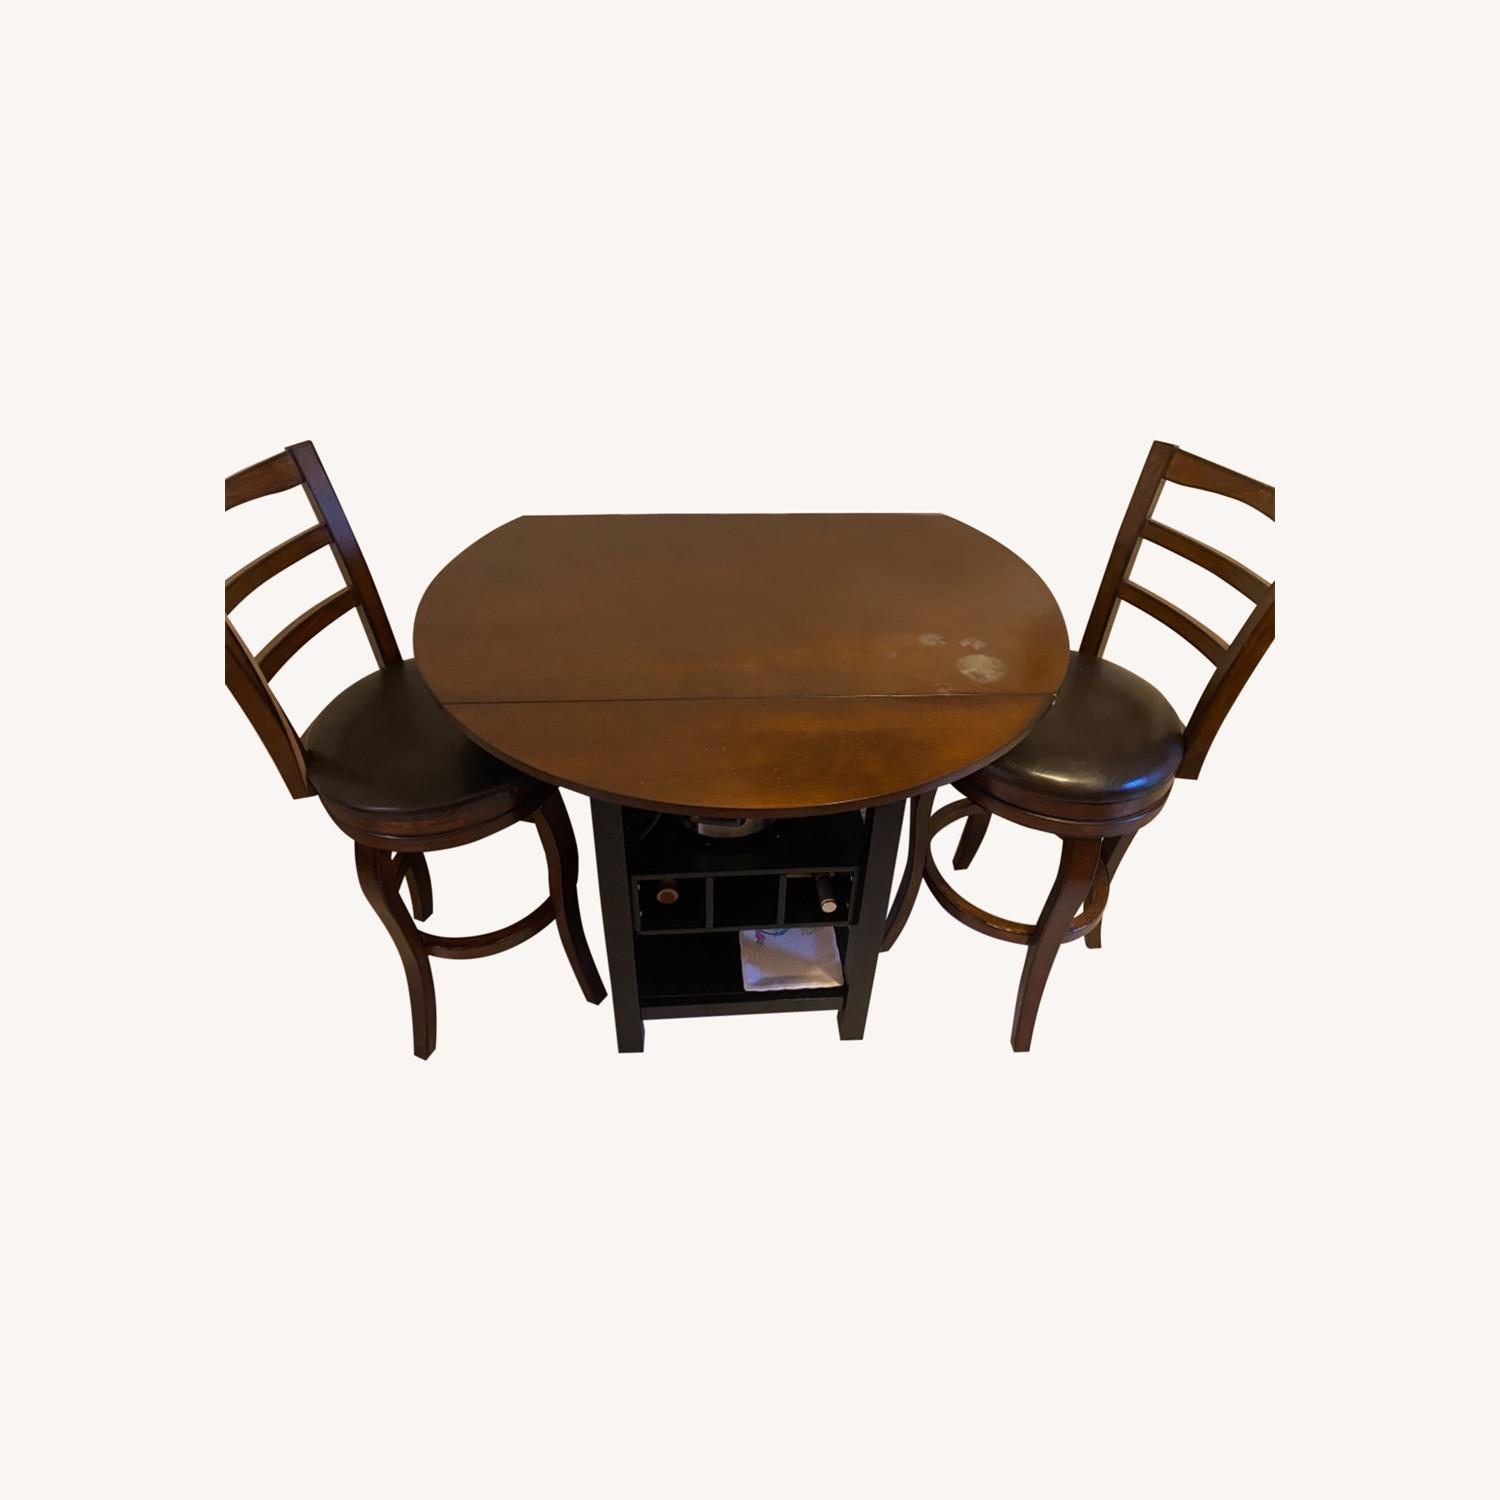 Pub Style Kitchen Table with Chairs - image-0